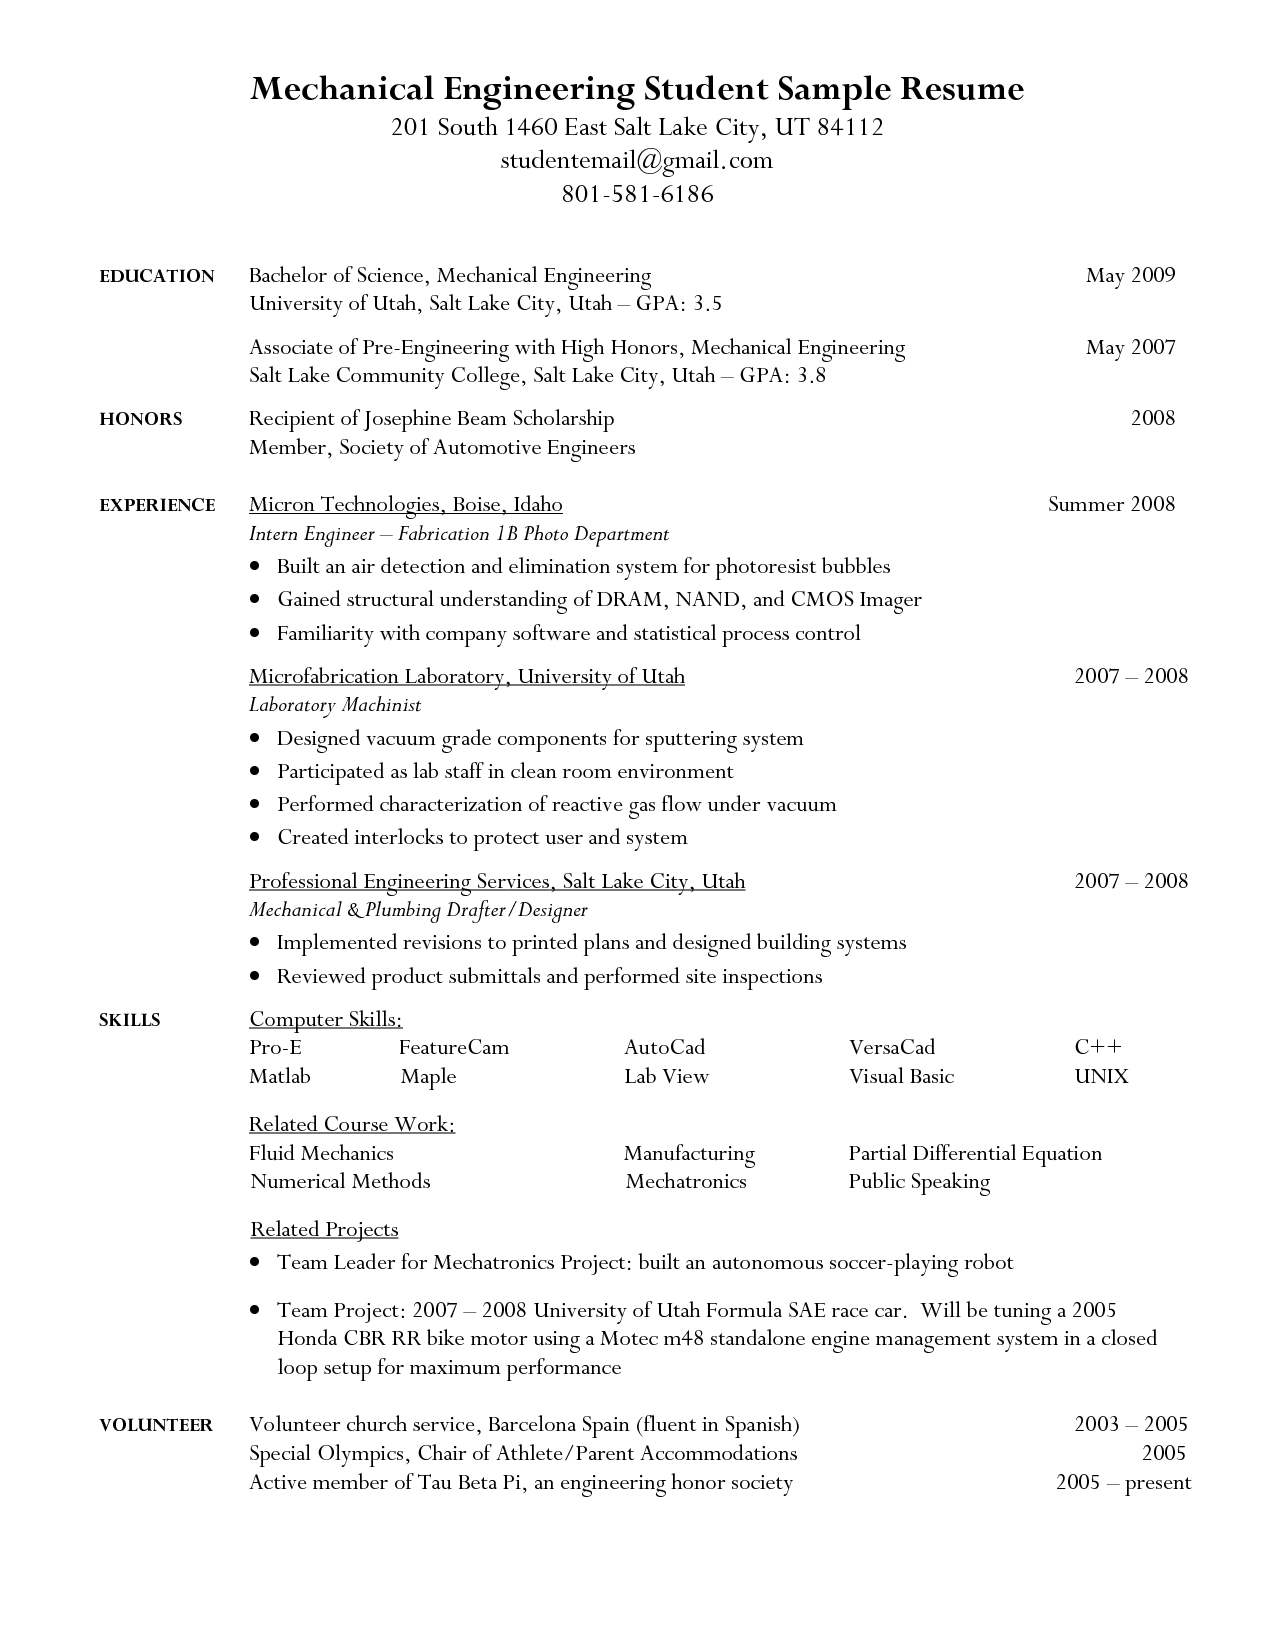 Objective For Electrical Engineer Resume Engineering Student Resume Google Search Resumes